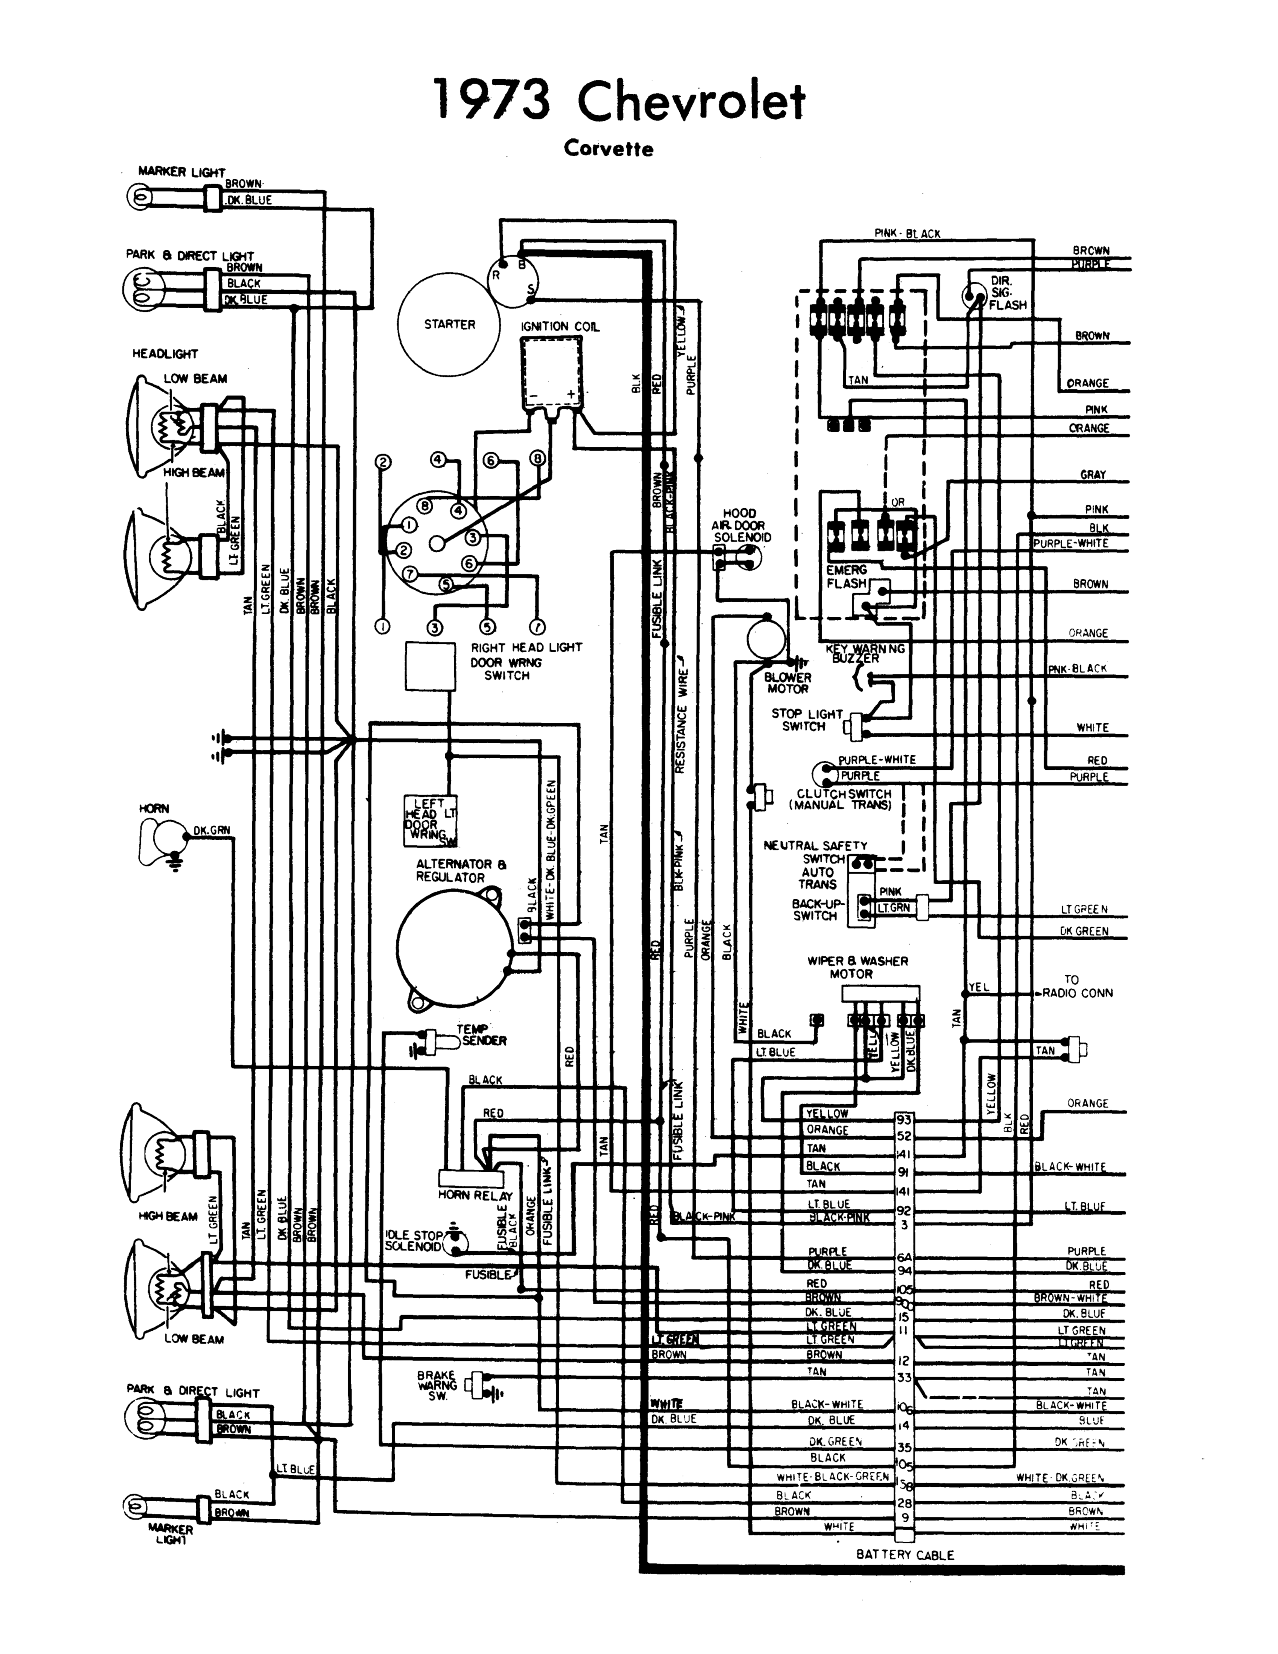 wiring diagram 1973 corvette chevy corvette 1973 wiring diagrams rh pinterest com 1973 corvette wiring diagram pdf 1973 corvette engine wiring diagram